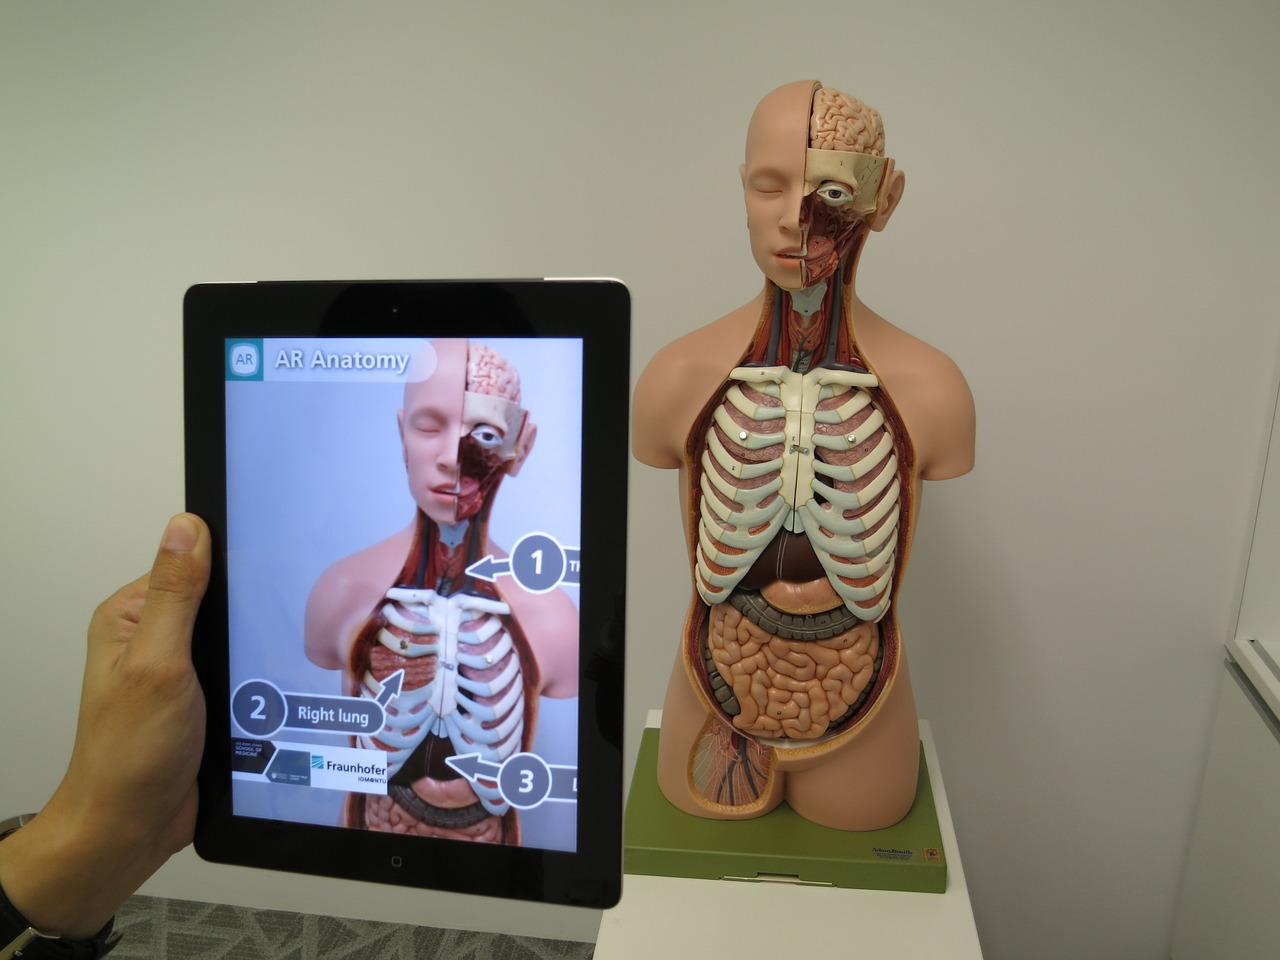 How augmented reality is used?